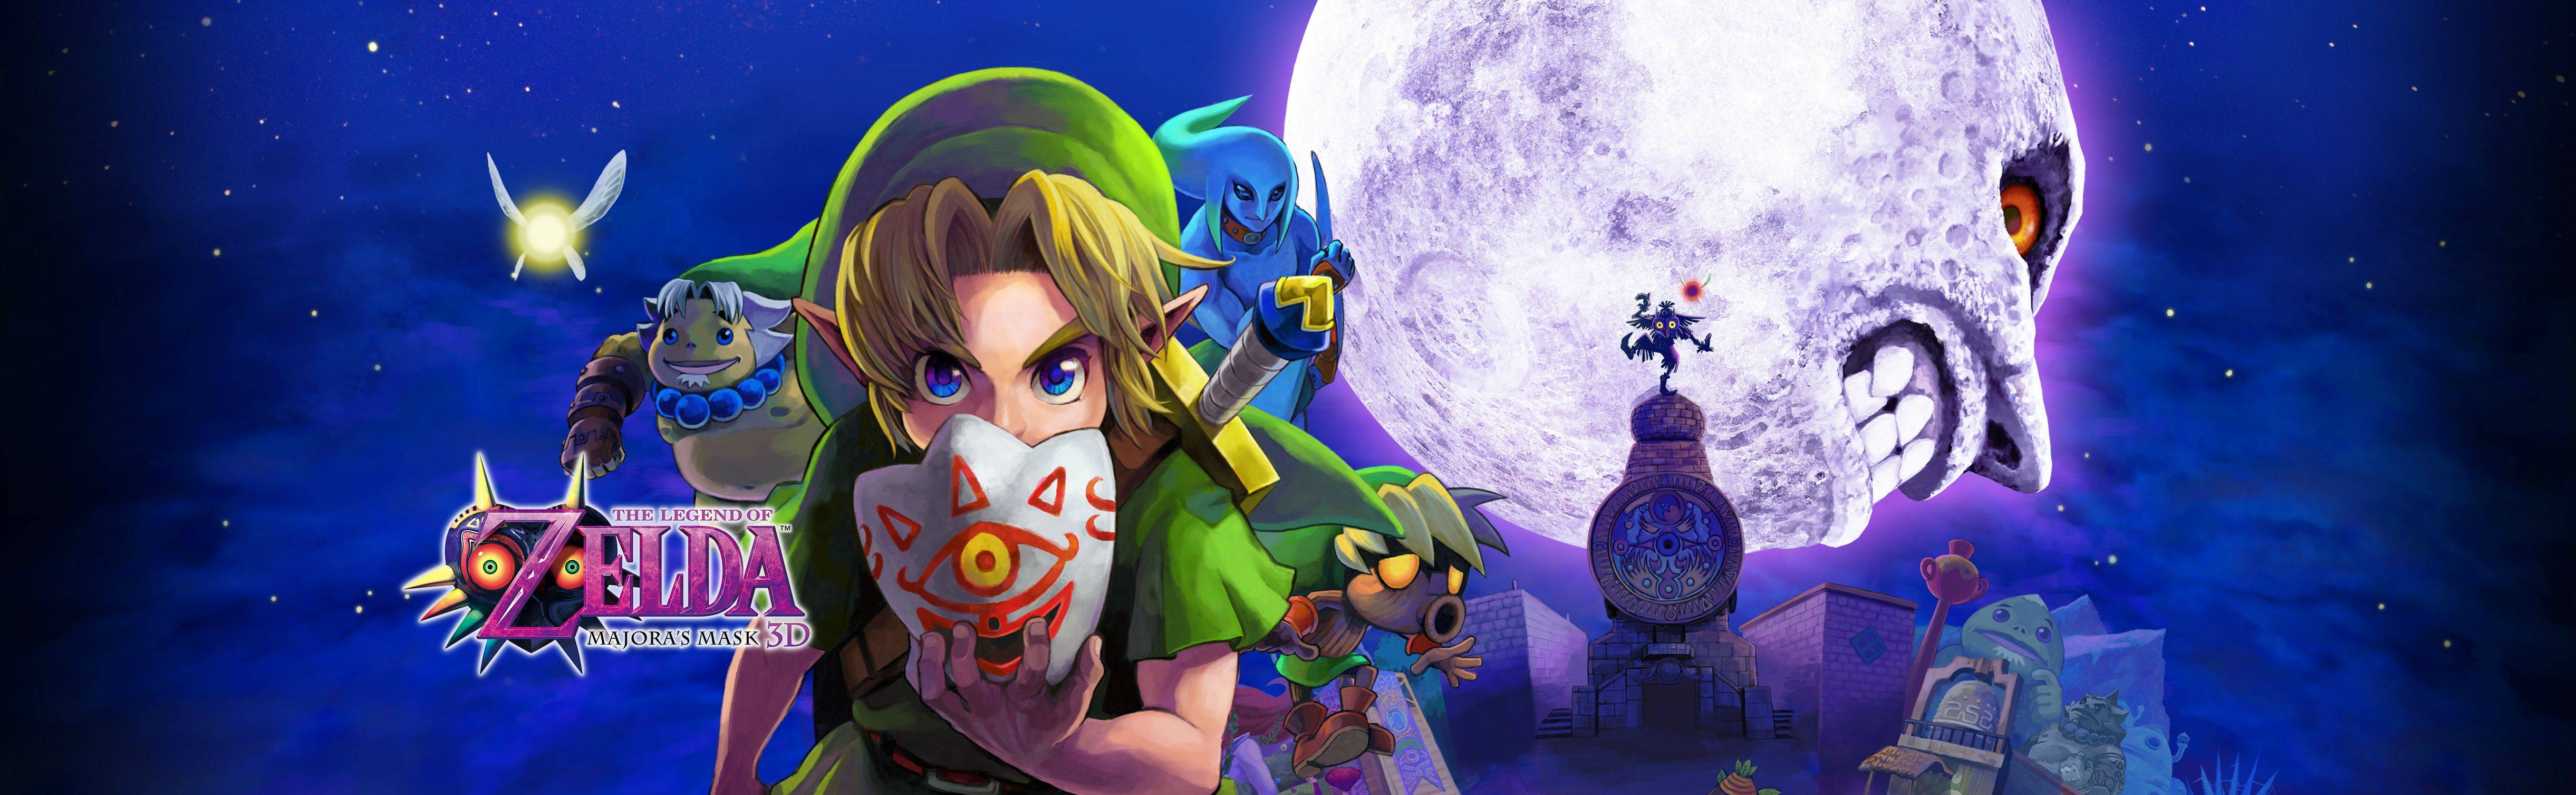 Перевод The Legend of Zelda: Majora's Mask 3D - Изображение 1